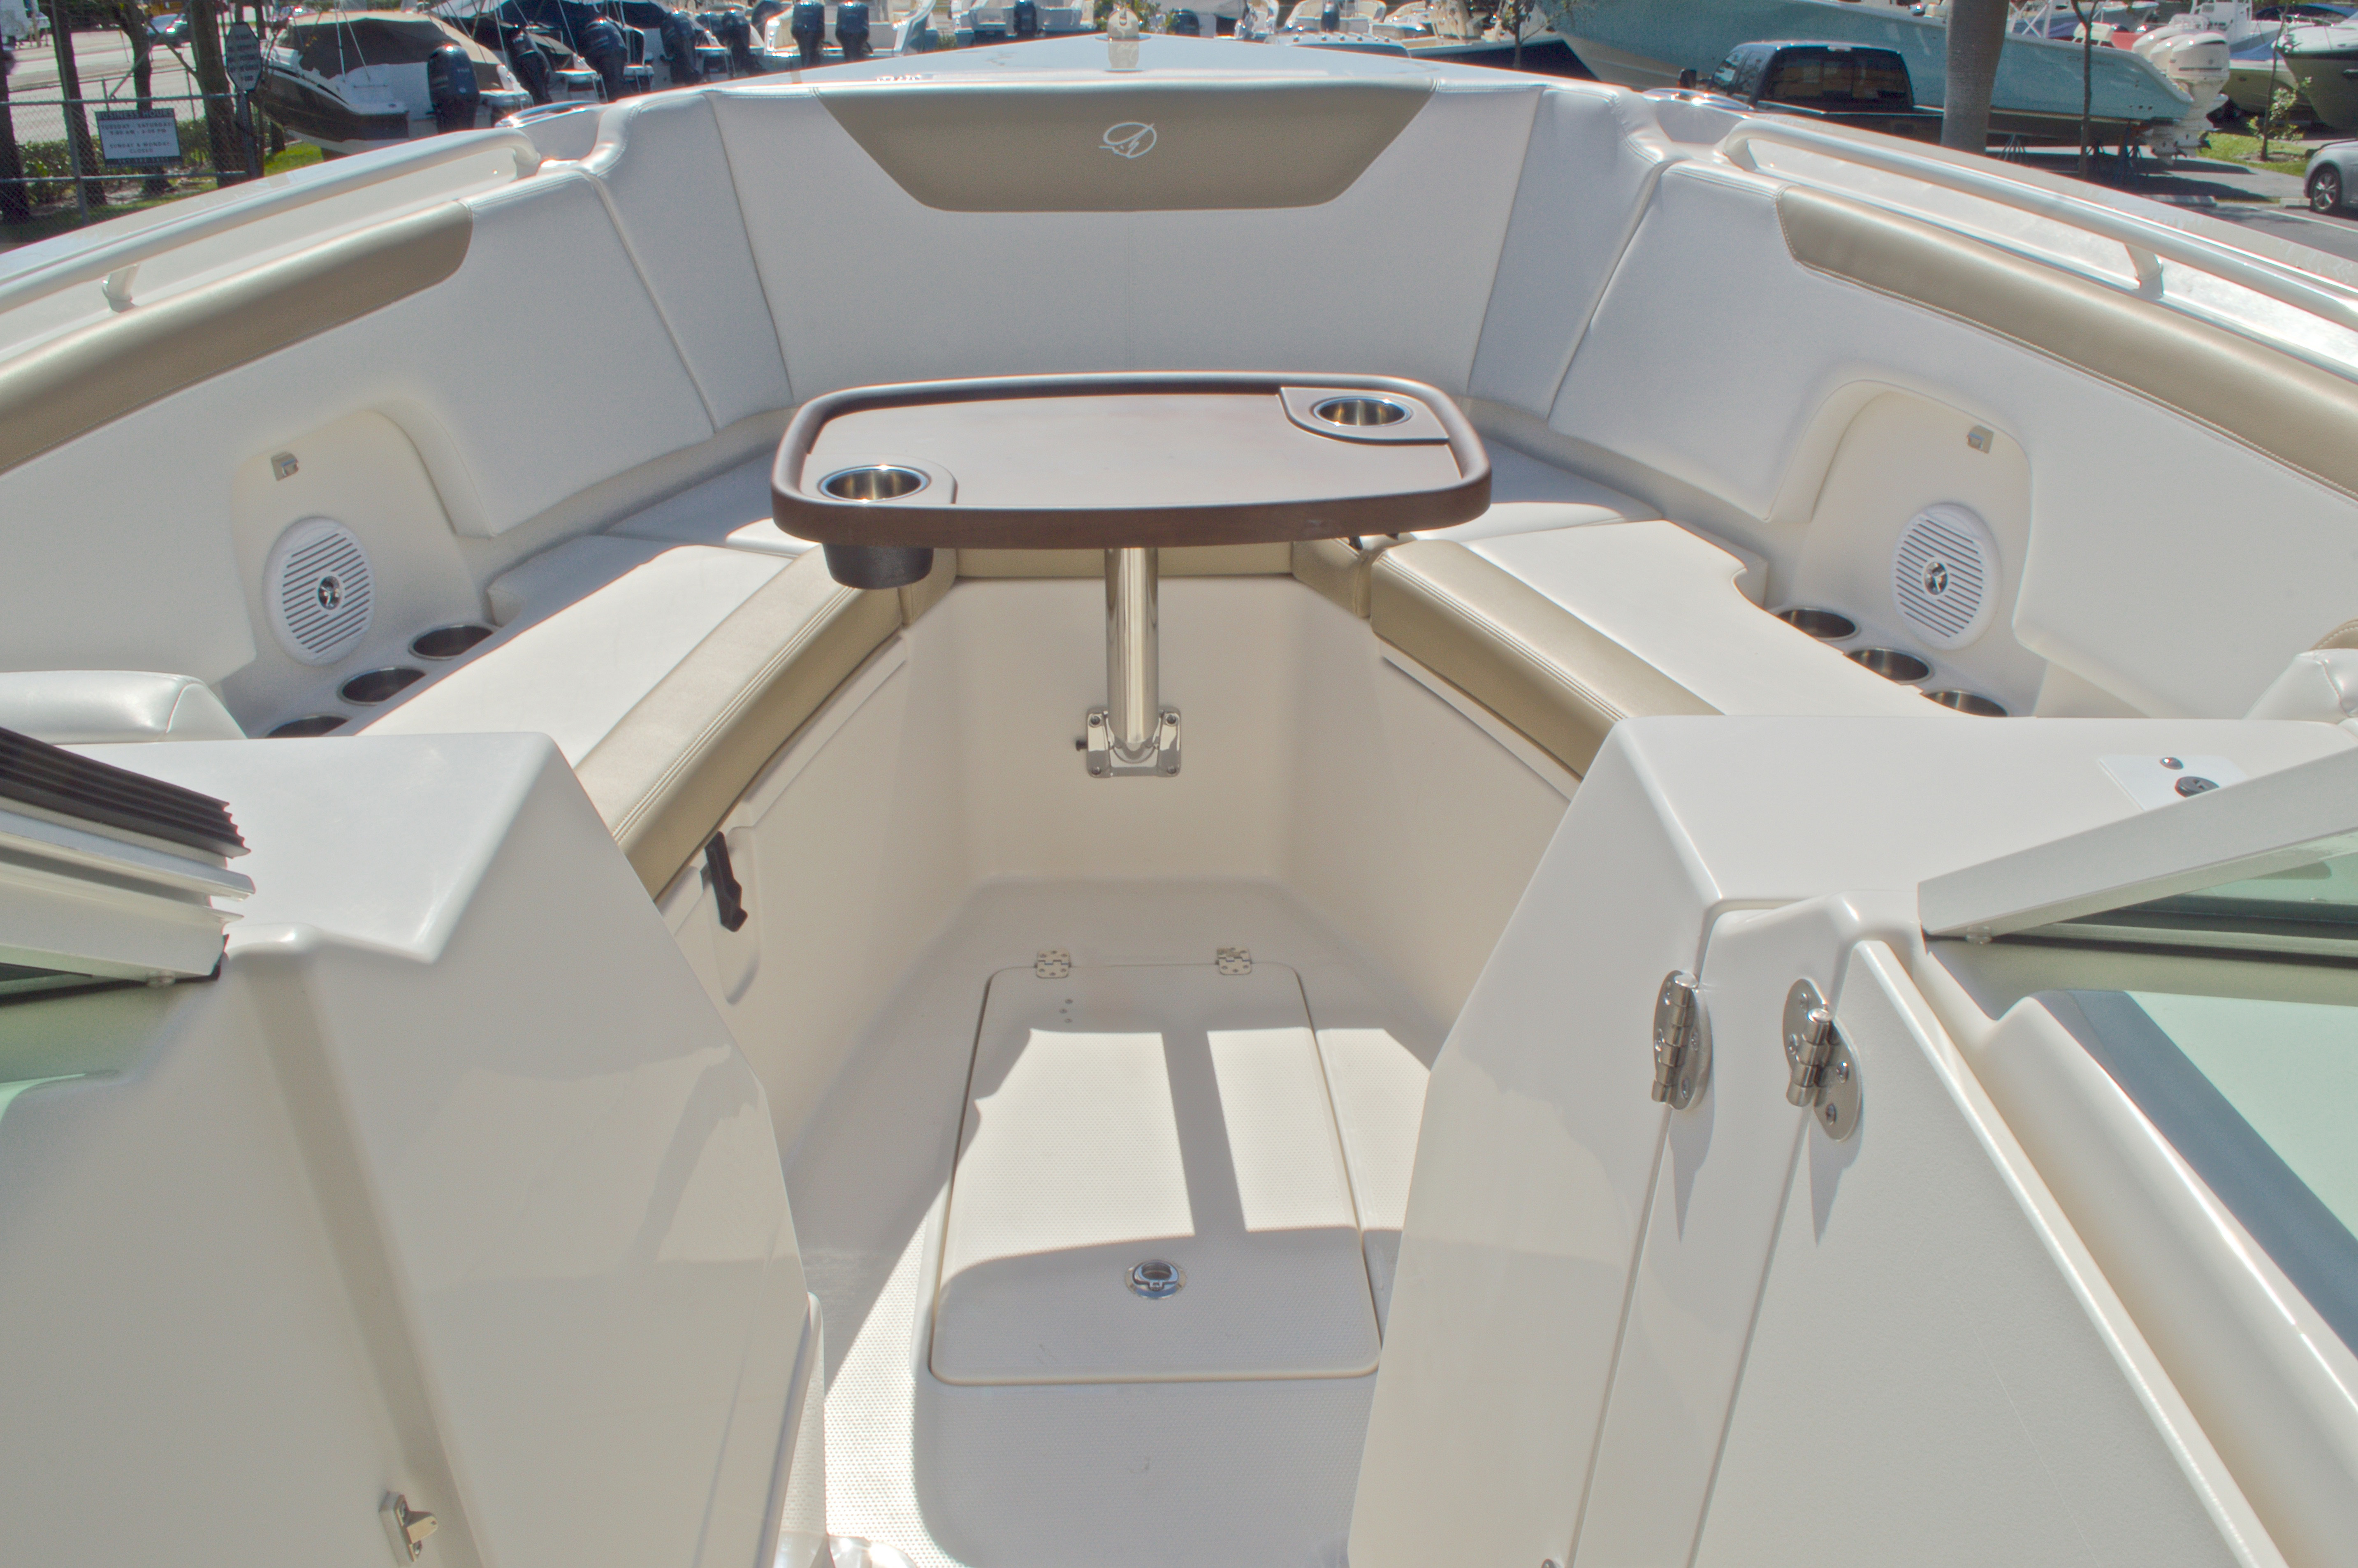 Thumbnail 69 for New 2016 Sailfish 325 Dual Console boat for sale in West Palm Beach, FL